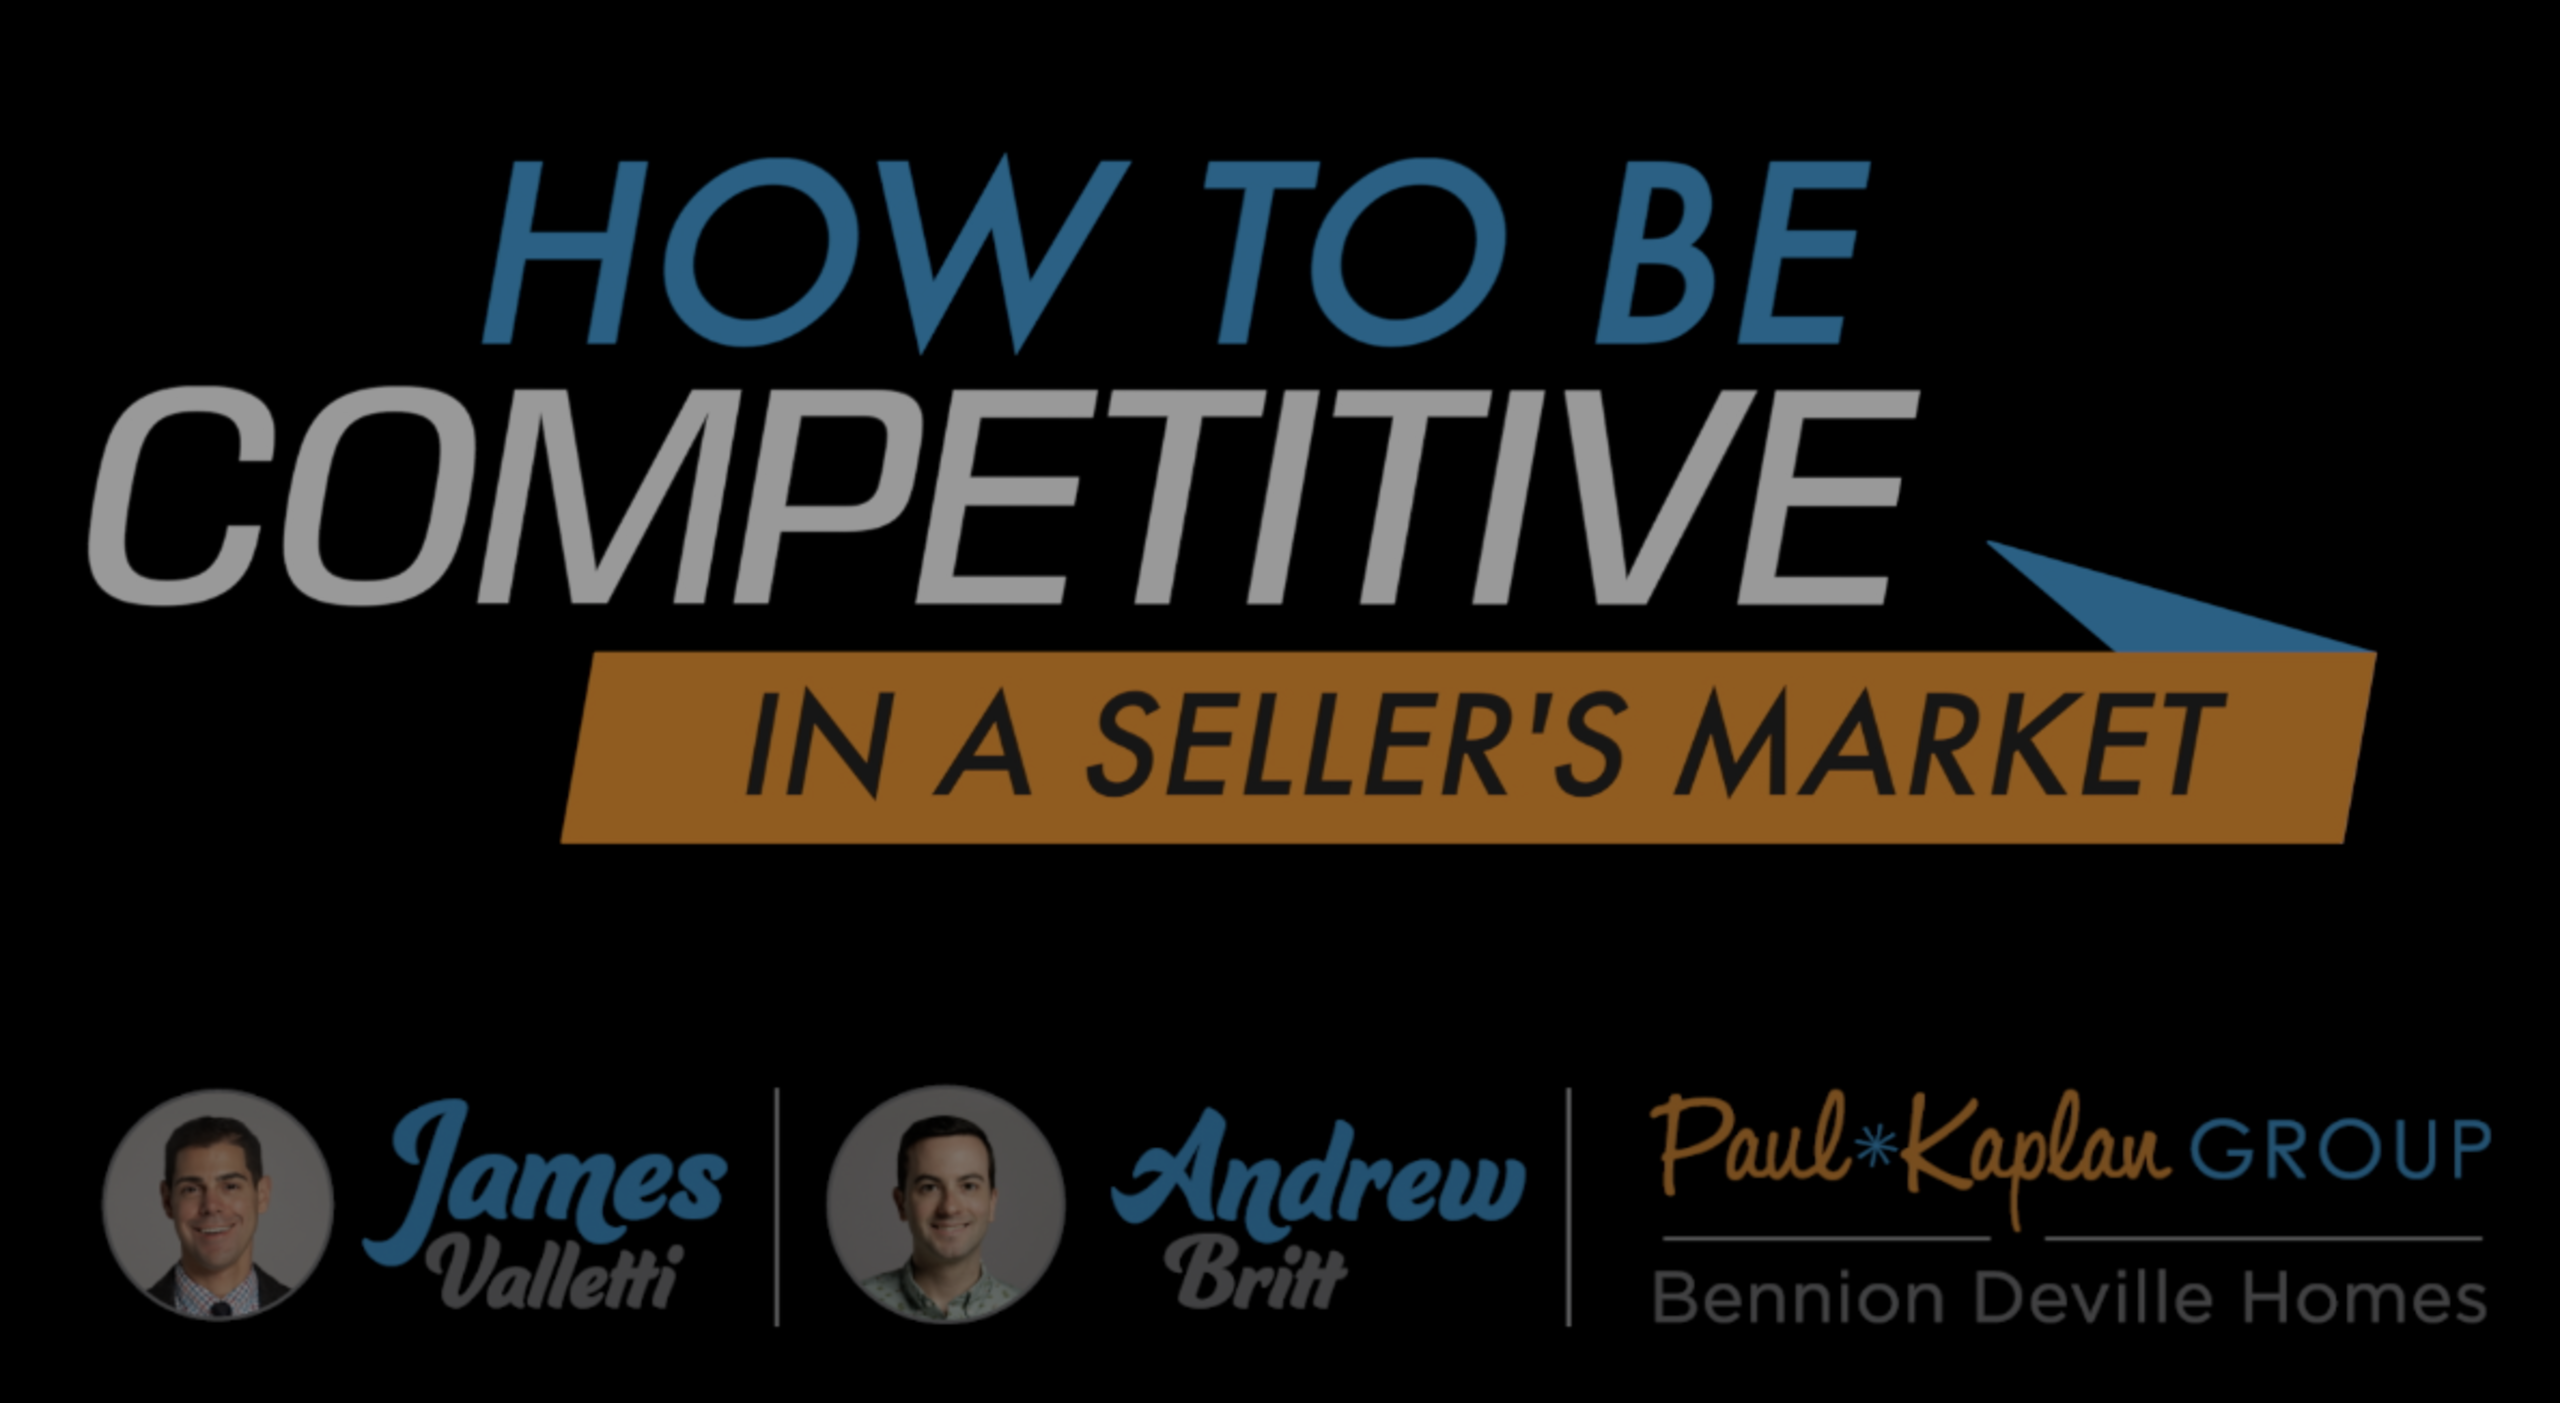 How To Be Competitive In A Seller's Market